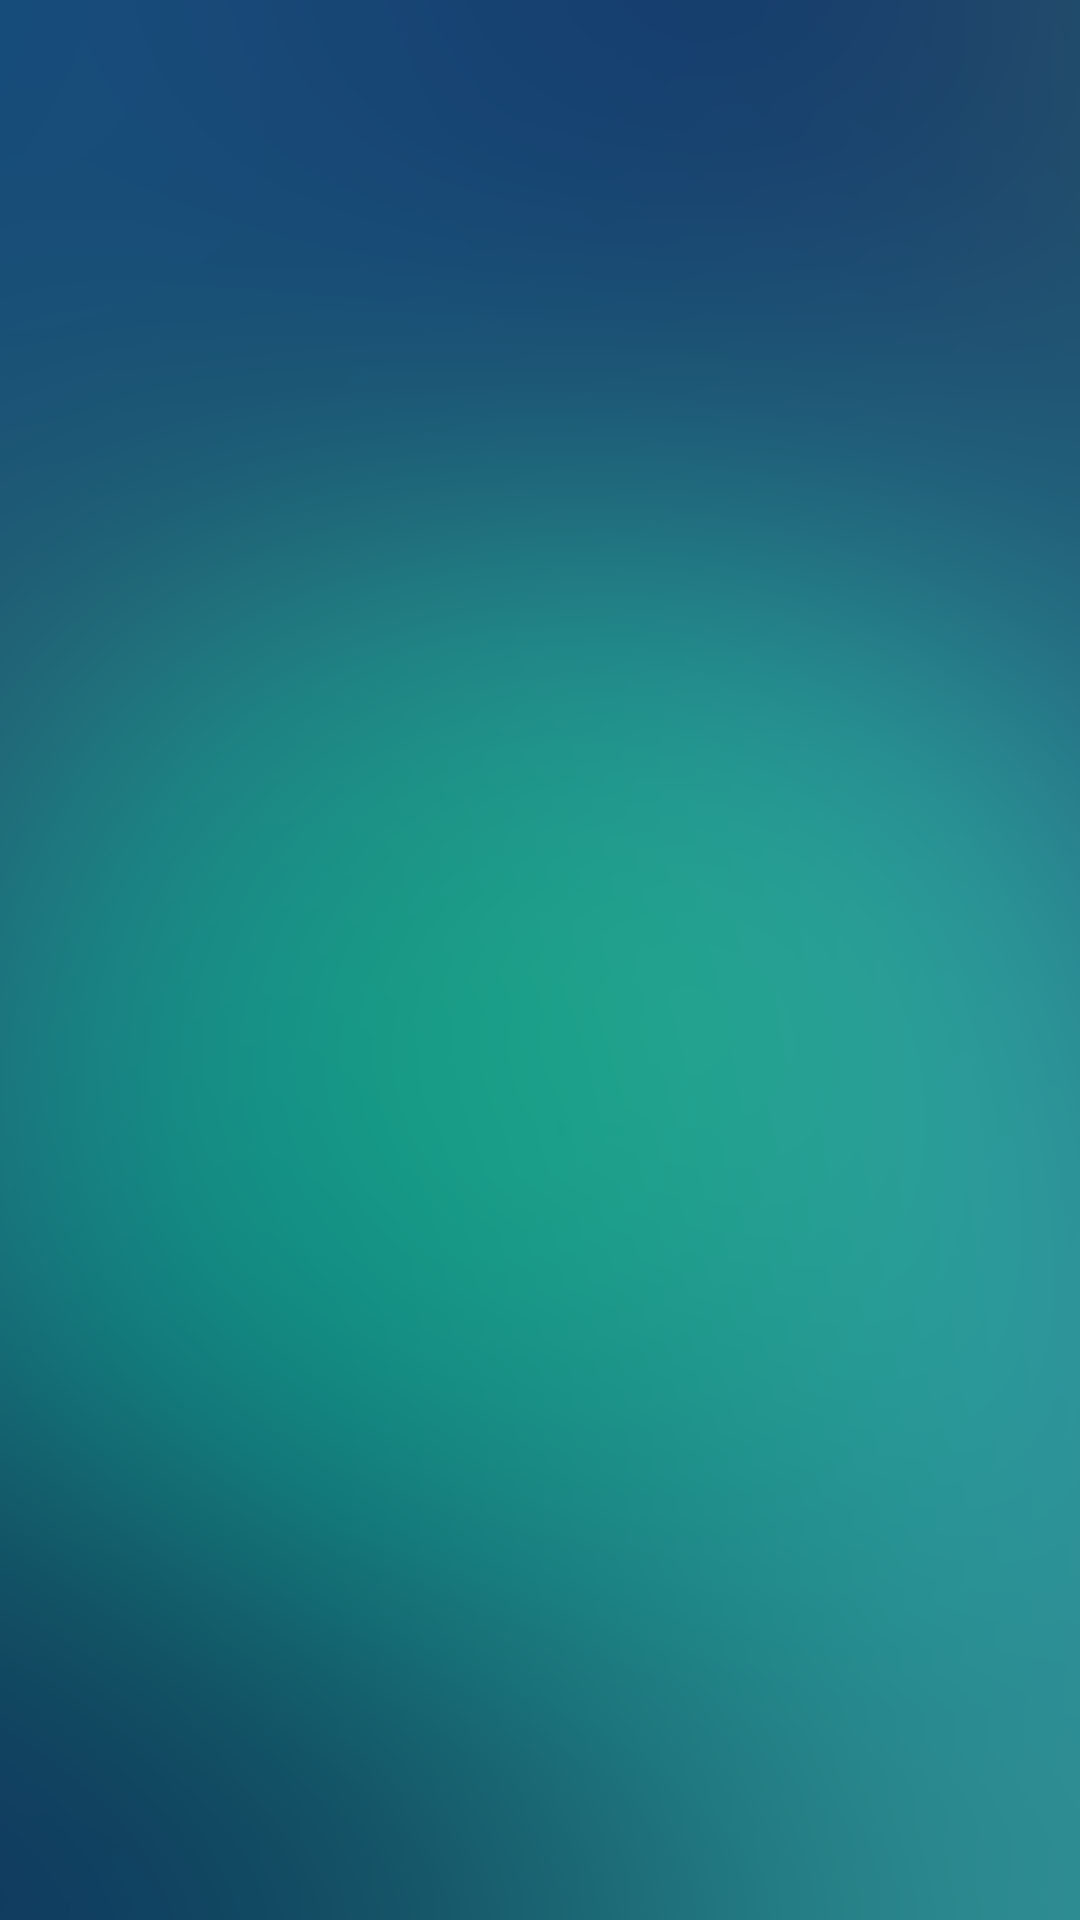 Blue Green Circle Gradient Android Wallpaper …